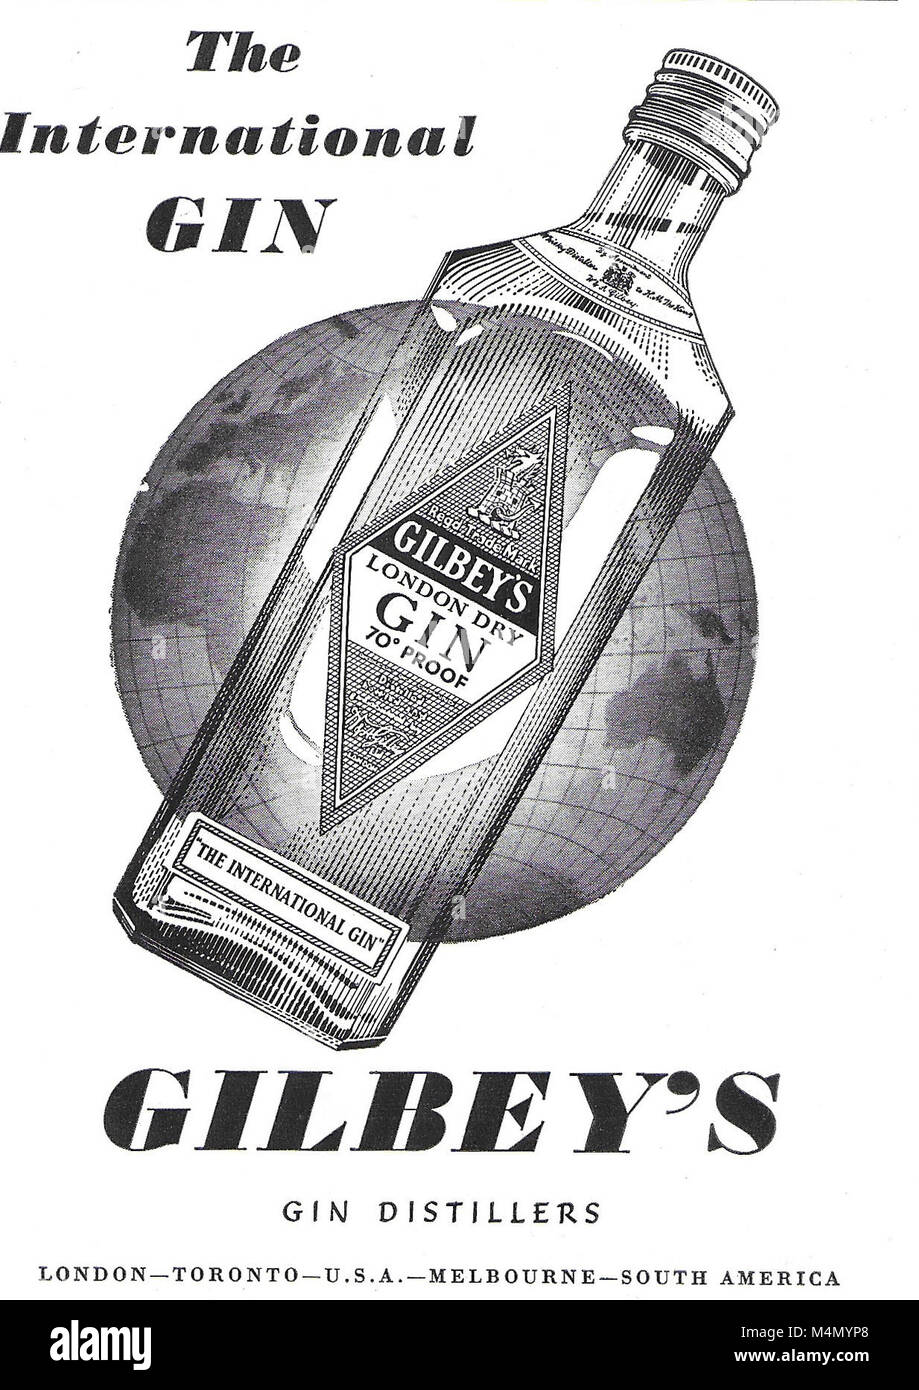 Gilbey's gin advert, advertising in Country Life magazine UK 1951 - Stock Image